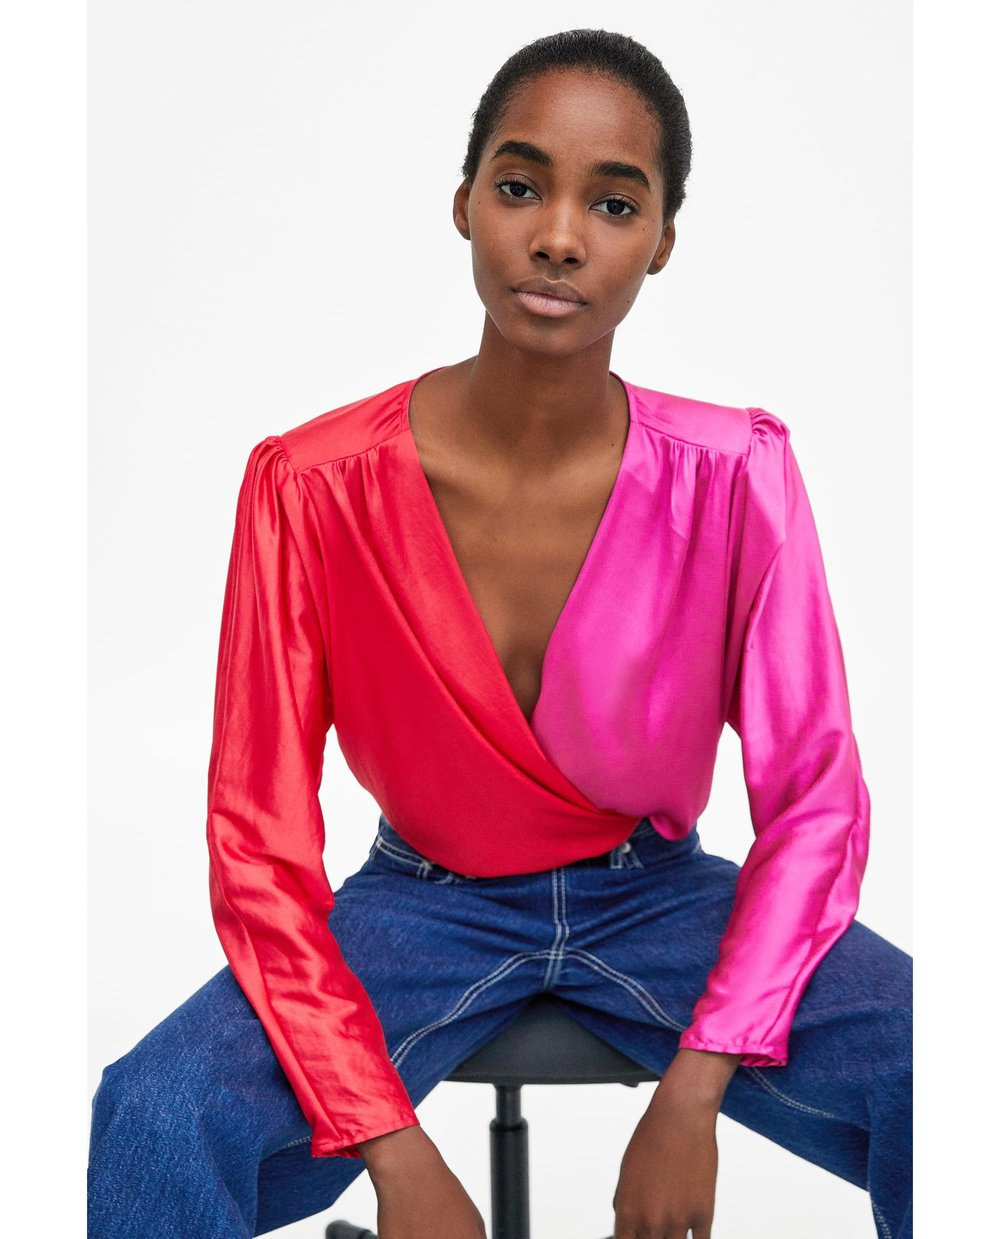 Two Tone Crossover Bodysuit - £29.99, ZaraI know that pink and red isn't for everybody, but ugly chic is basically my whole brand. This bodysuit speaks to me on a spiritual level. I had a similar navy American Apparel one back at university and this feels a lot more like the grown up girl version.I've been seeing it this clashing colour combo a lot on SS18 runways - Lanvin and Emilia Wickstead were big favourites.